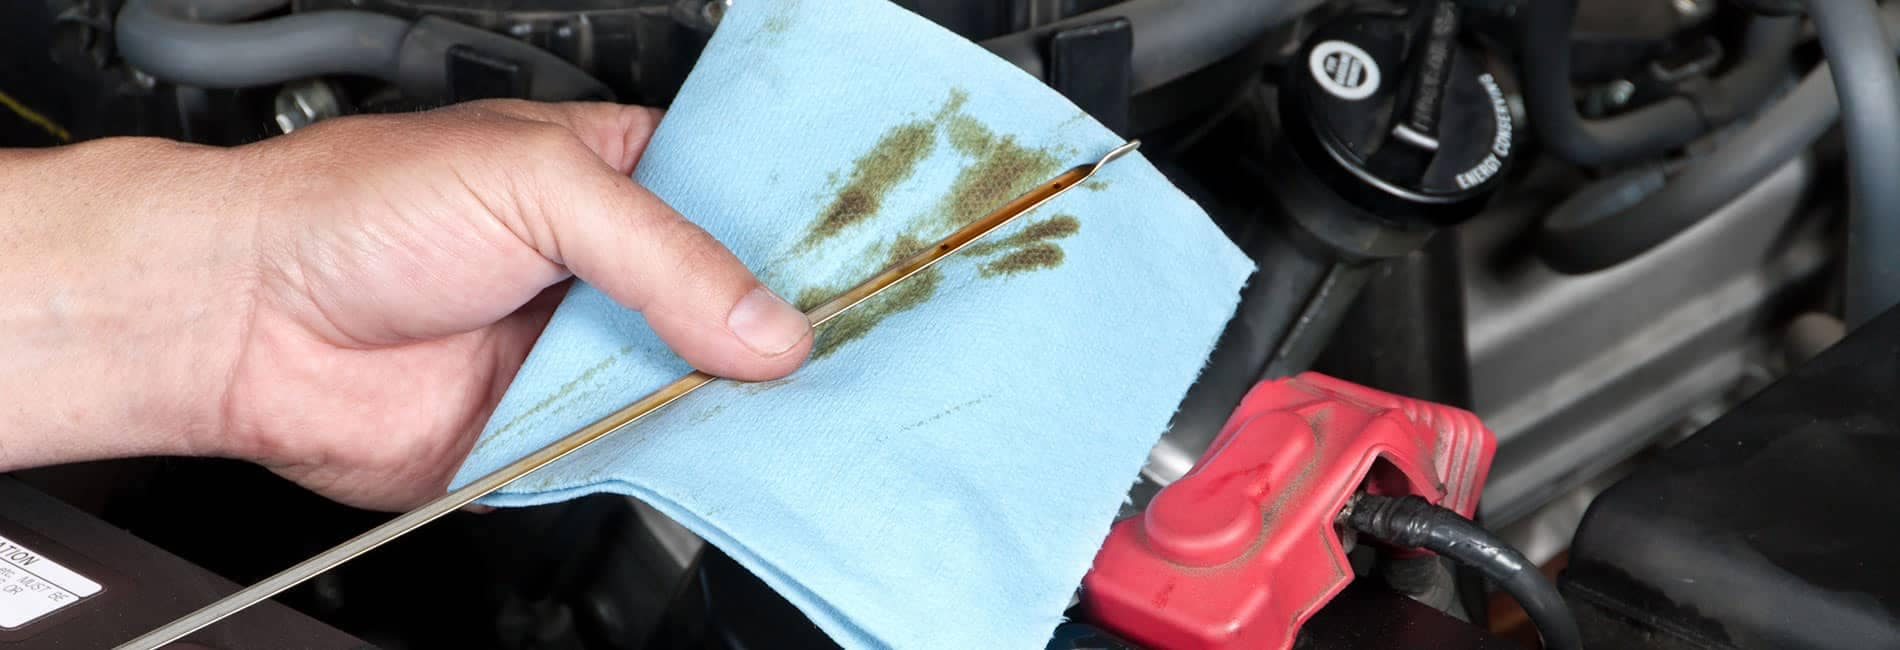 technician wiping the oil on a cloth